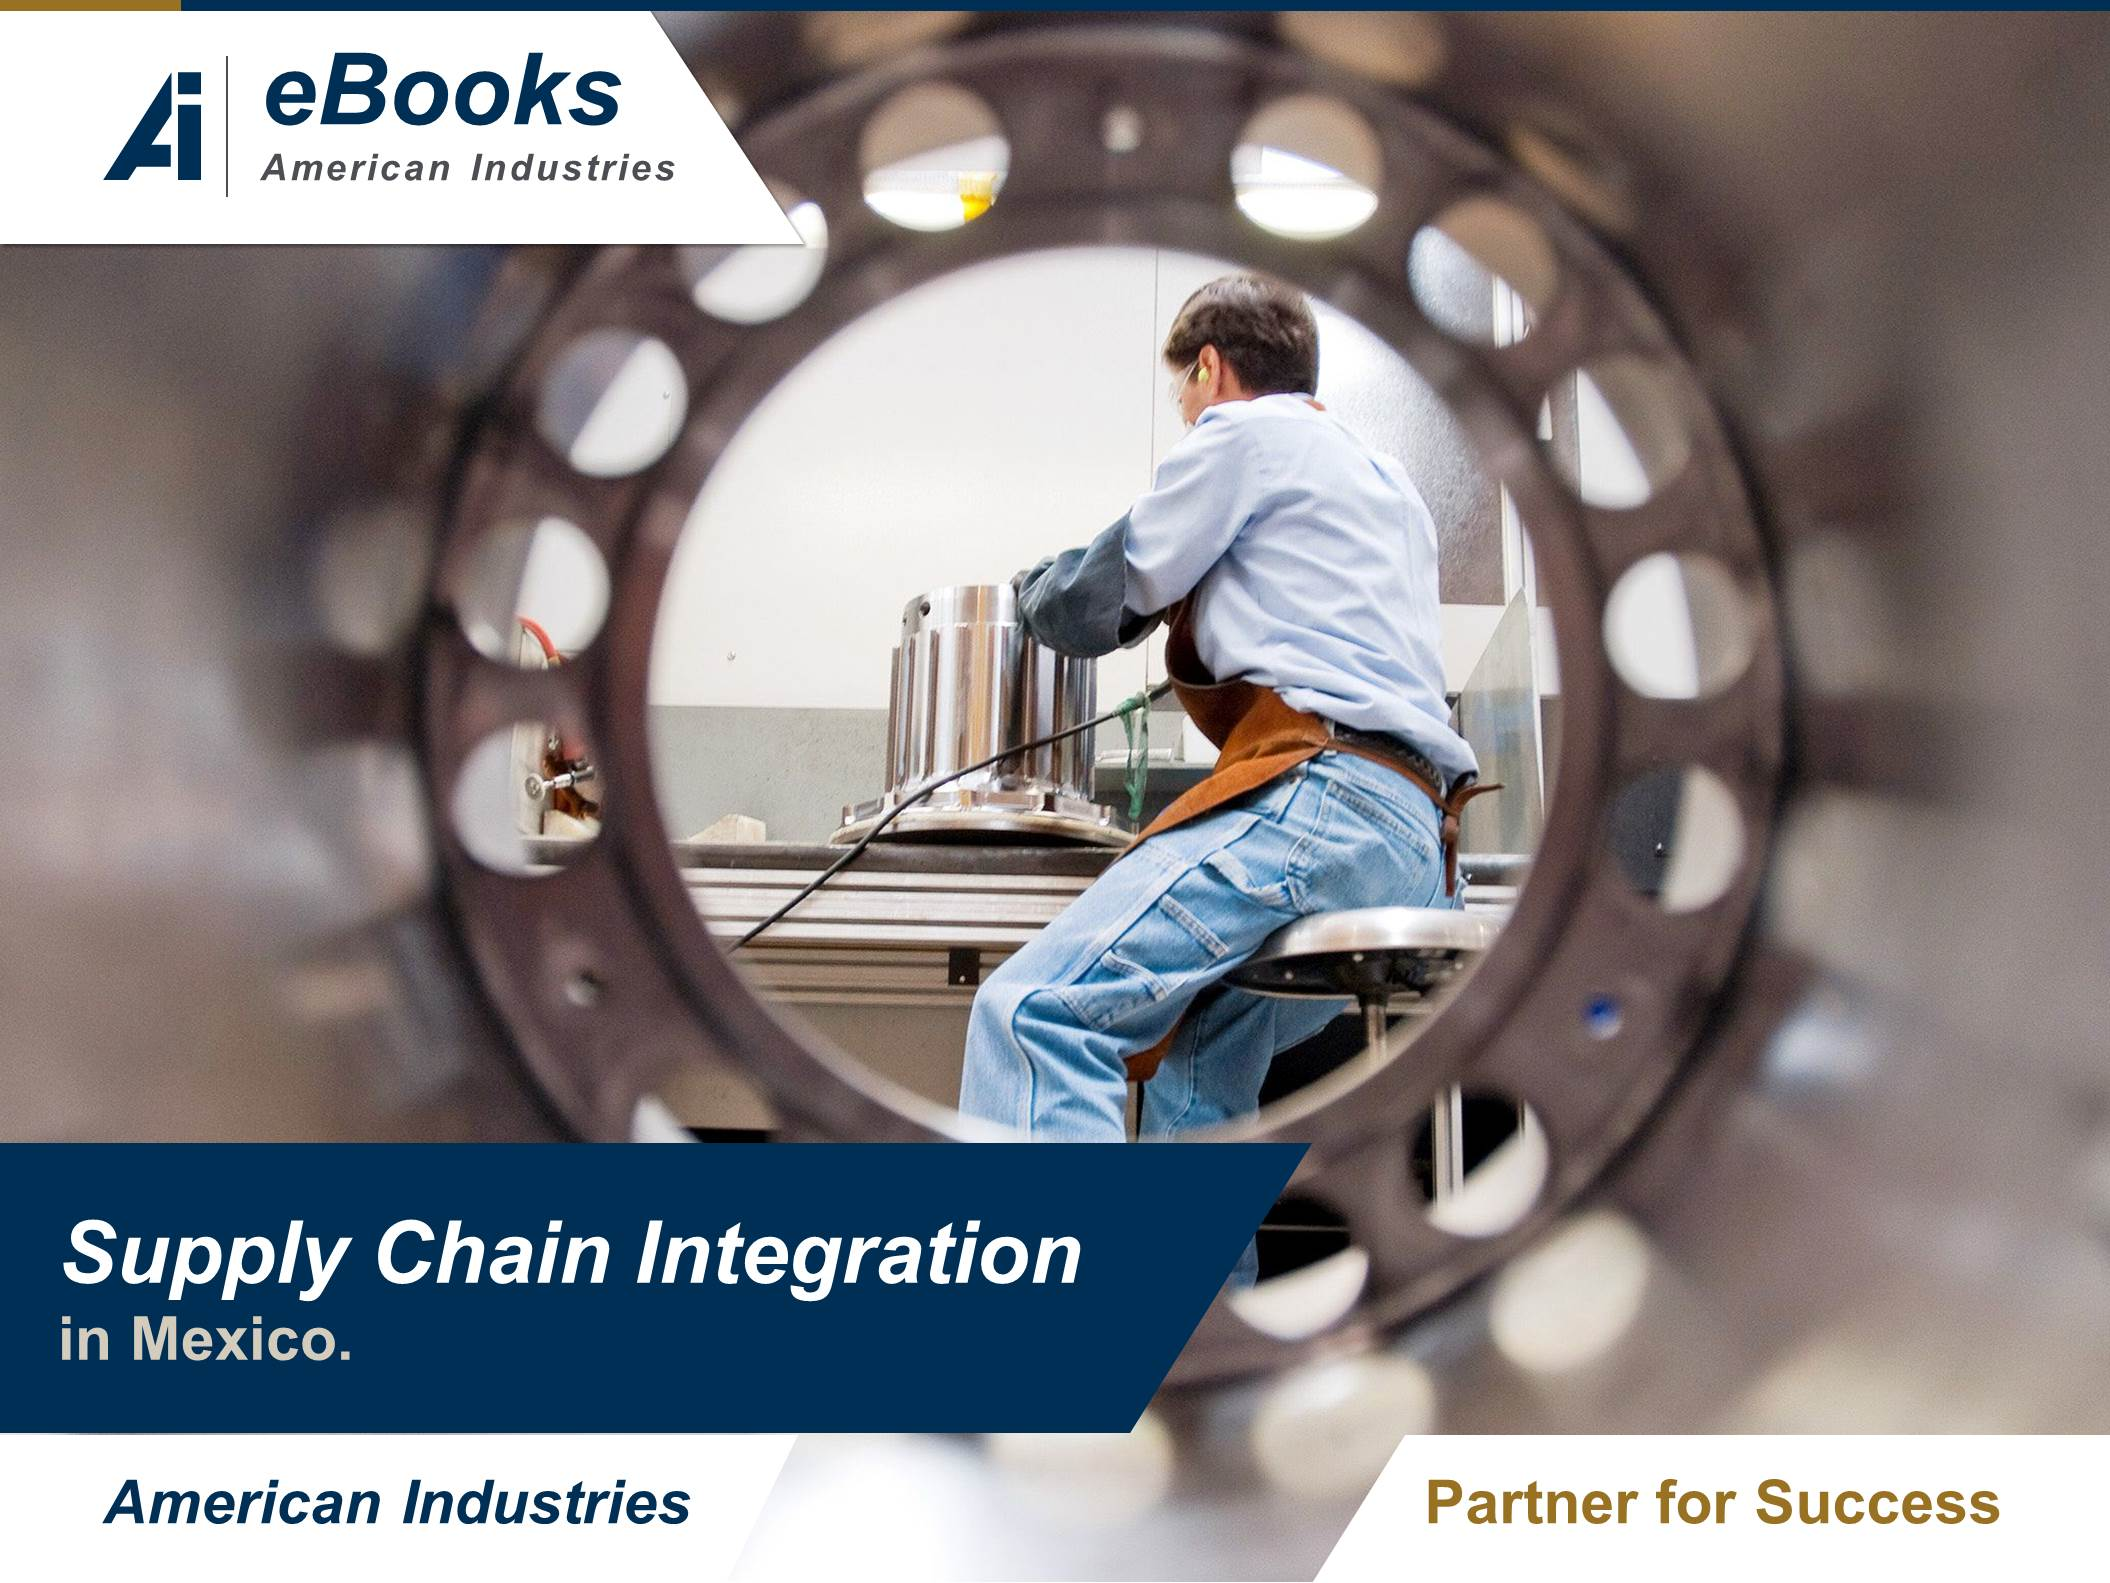 Supply Chain Integration in Mexico